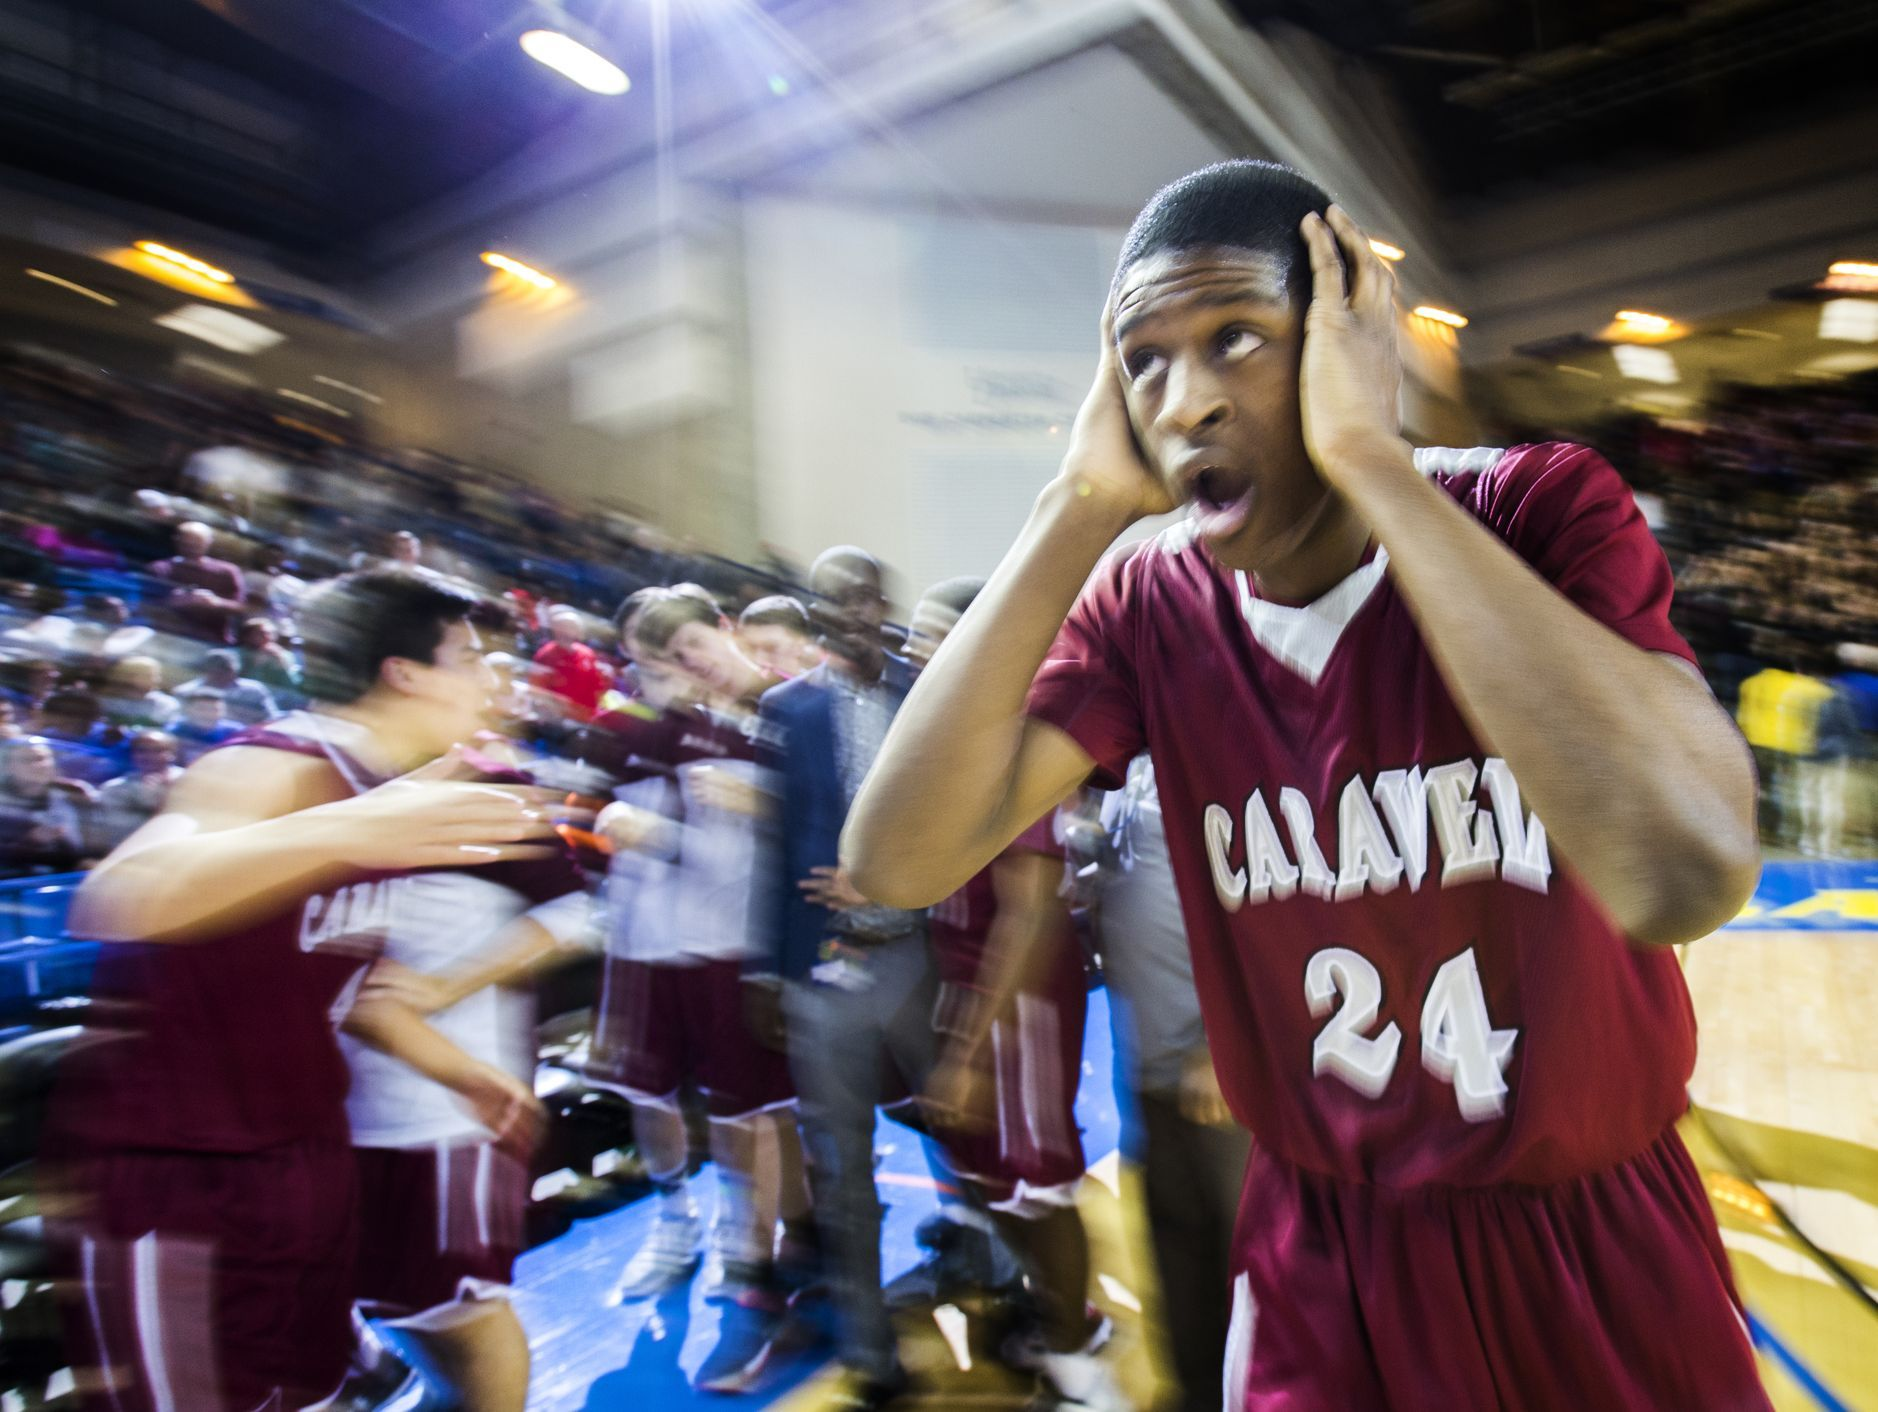 O'Koye Parker reacts as his teammates celebrate following their 48-47 win over St. Thomas More Academy in the DIAA Boy's State Basketball Tournament semi-finals at the Bob Carpenter Center in Newark on Thursday evening.